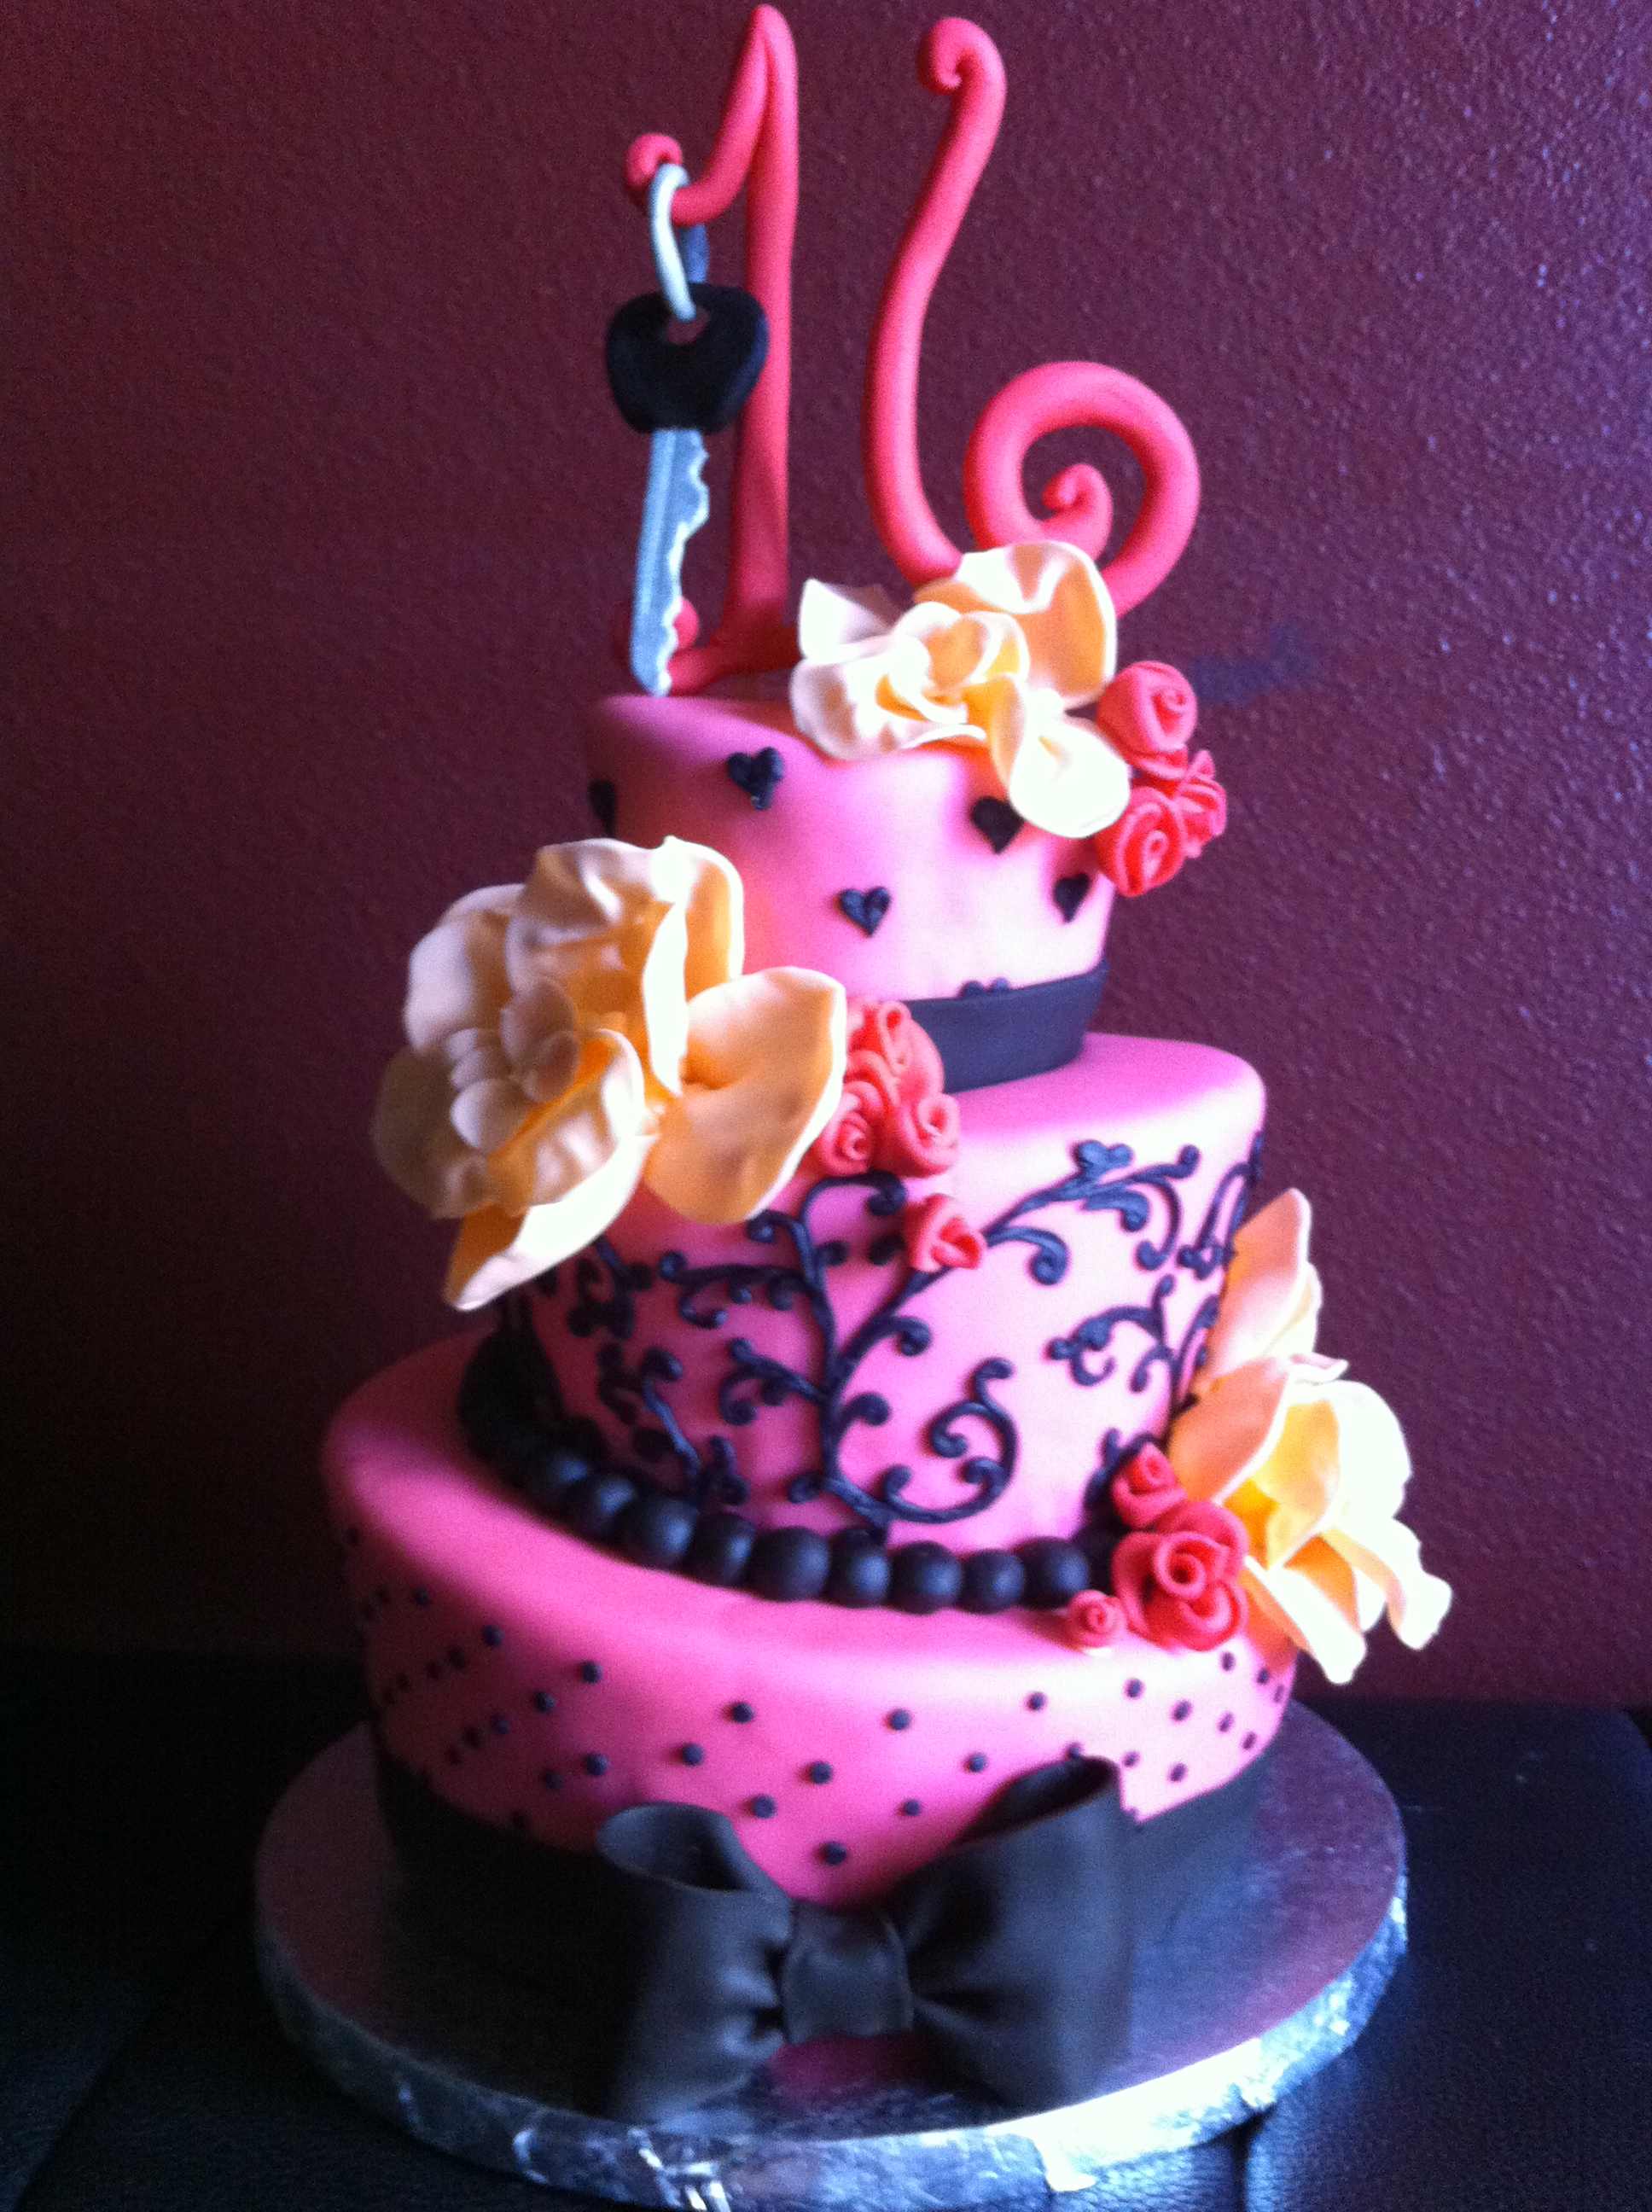 20 Super Amazing and Fantastic Cakes - Page 4 of 20